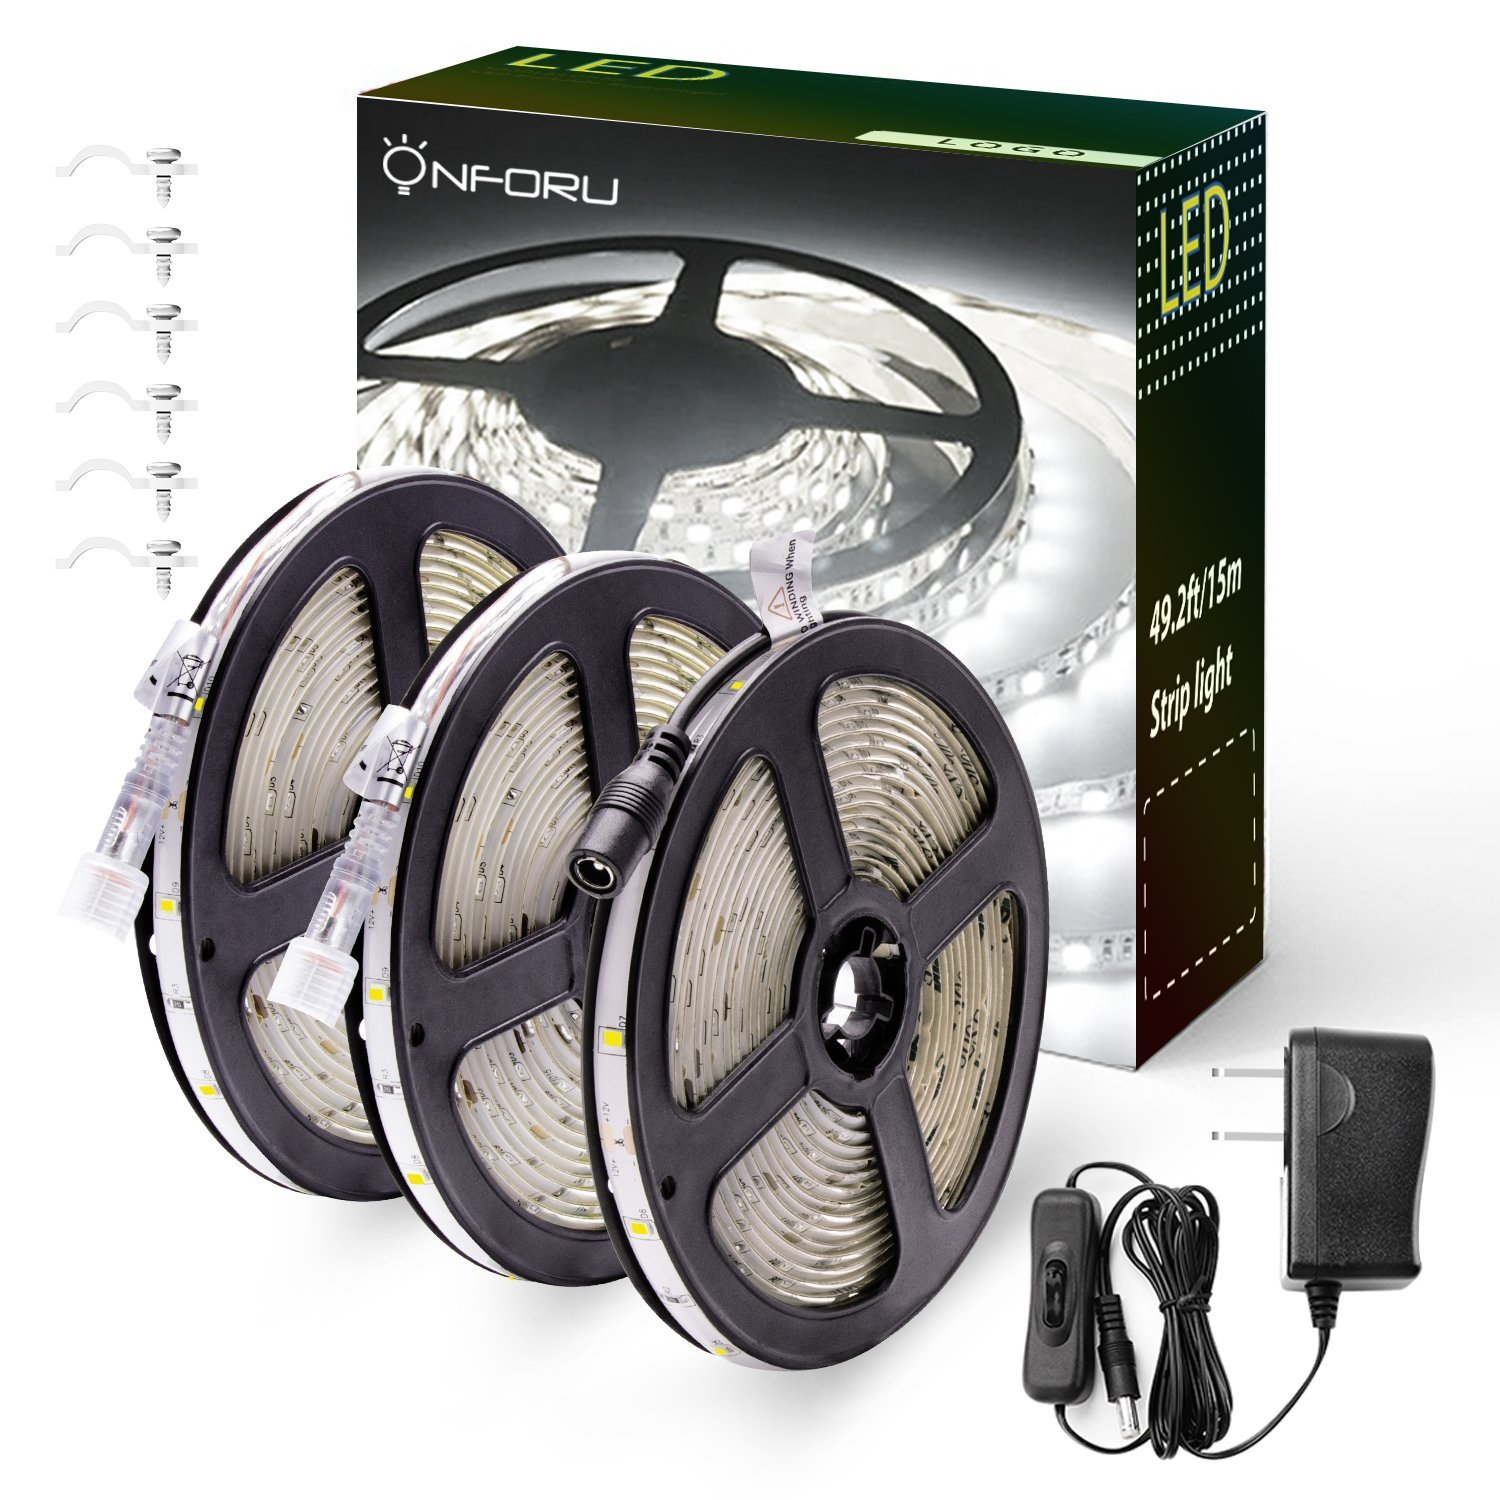 Onforu 50ft/15m Waterproof LED Strip Lights Kit, 6000K Cool White, 12V Flexible LED Rope 450 SMD 2835 LEDs, UL Listed Power Supply Switch, IP65 Waterproof Indoors Outdoors